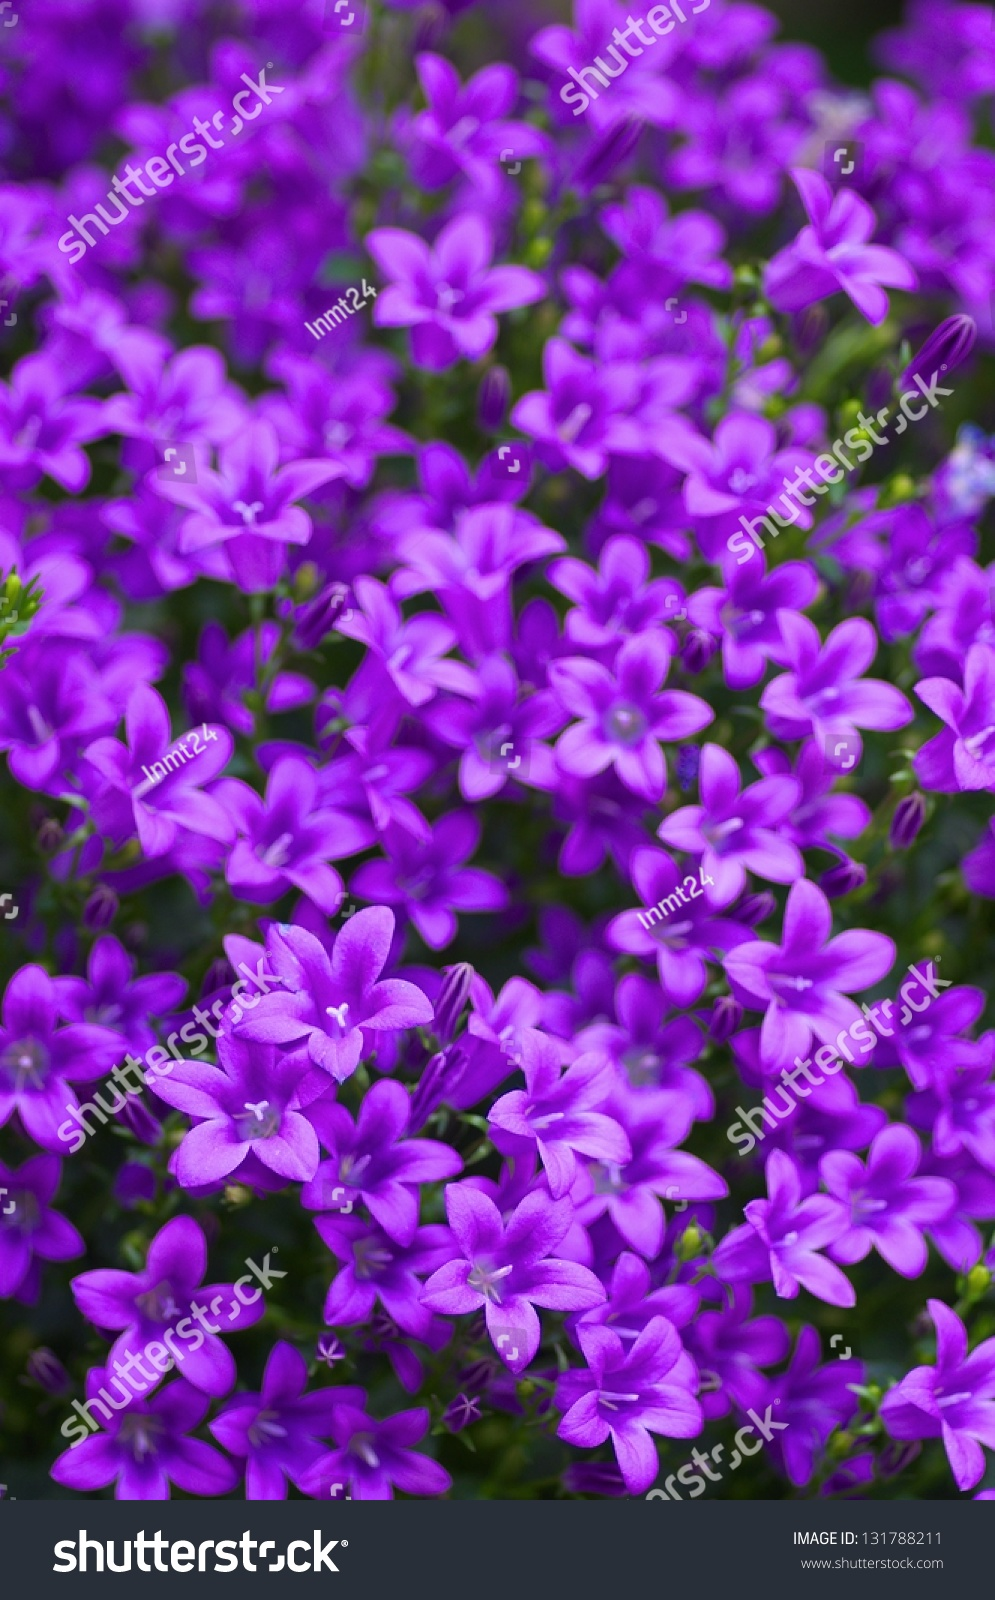 small purple flowers stock photo   shutterstock, Beautiful flower